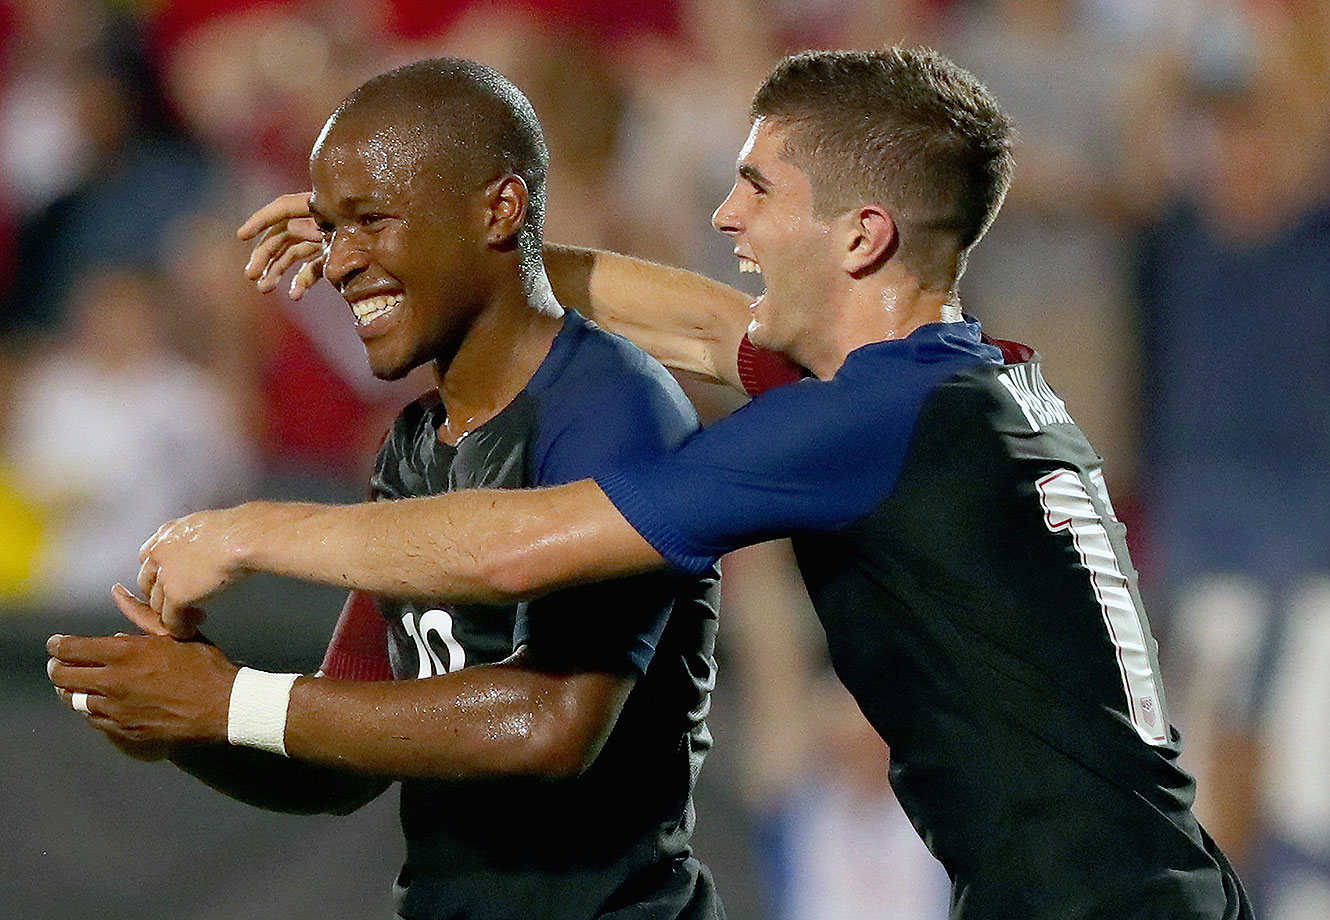 Nagbe Darlington #10 of the United States celebrates with Christian Pulisic #17 of the United States after scoring against Ecuador during an International Friendly match at Toyota Stadium on May 25, 2016 in Frisco, Texas.